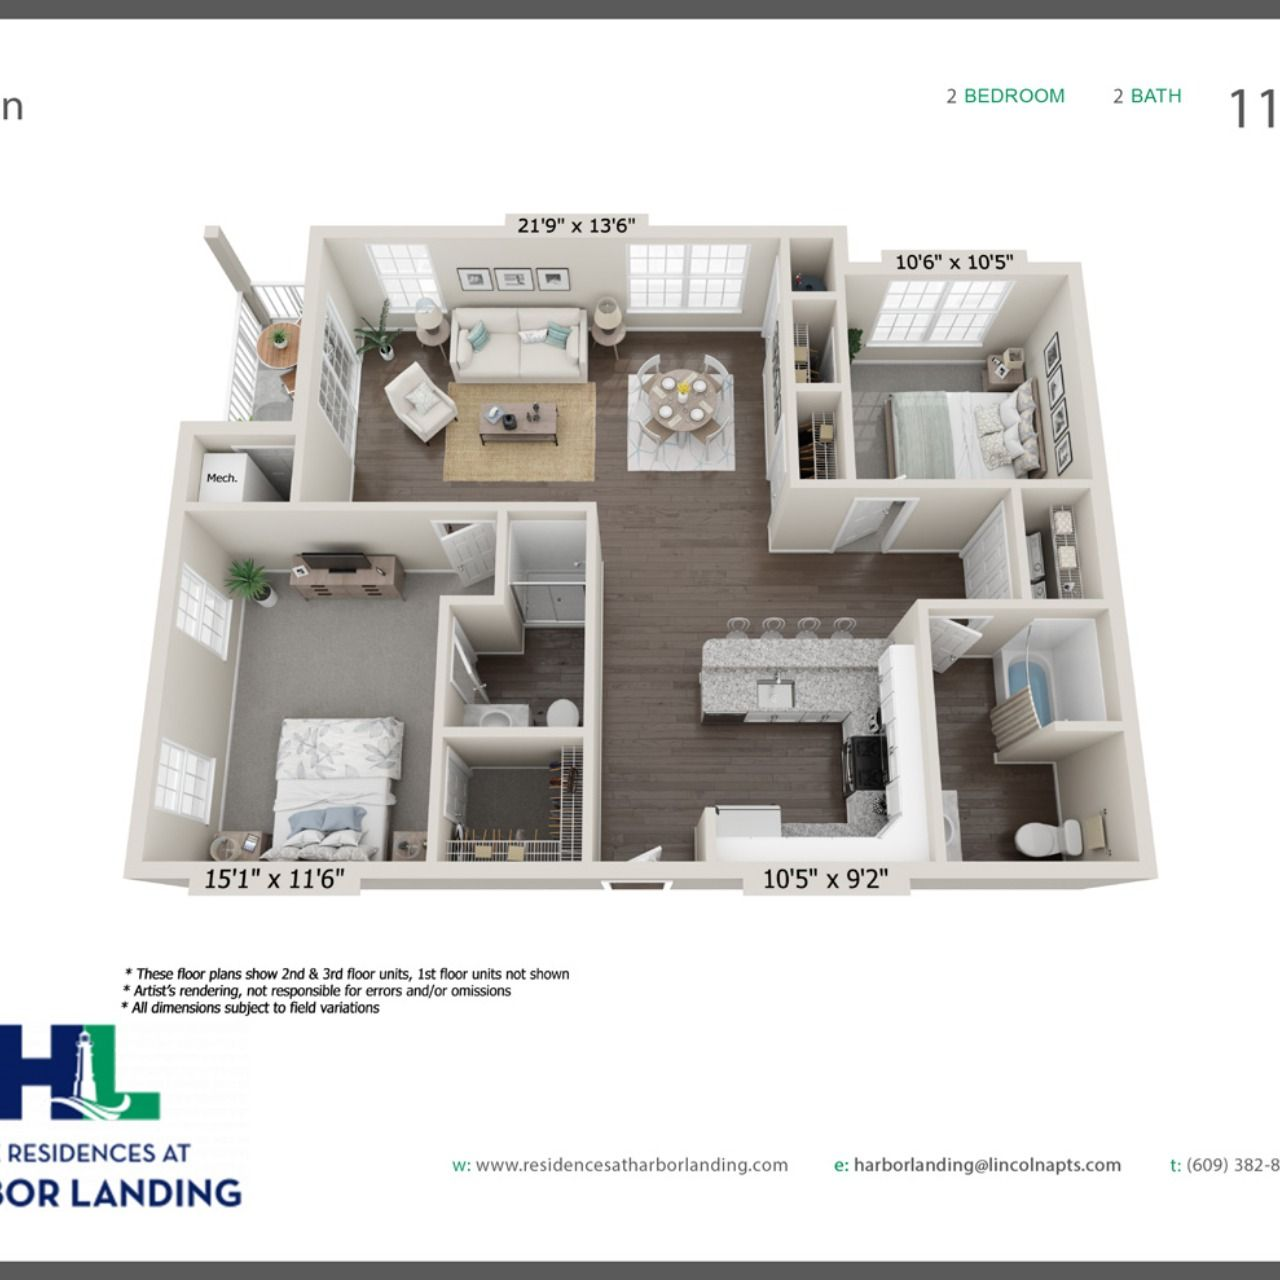 Check out our 3D Floor Plans Floor plans, New year new